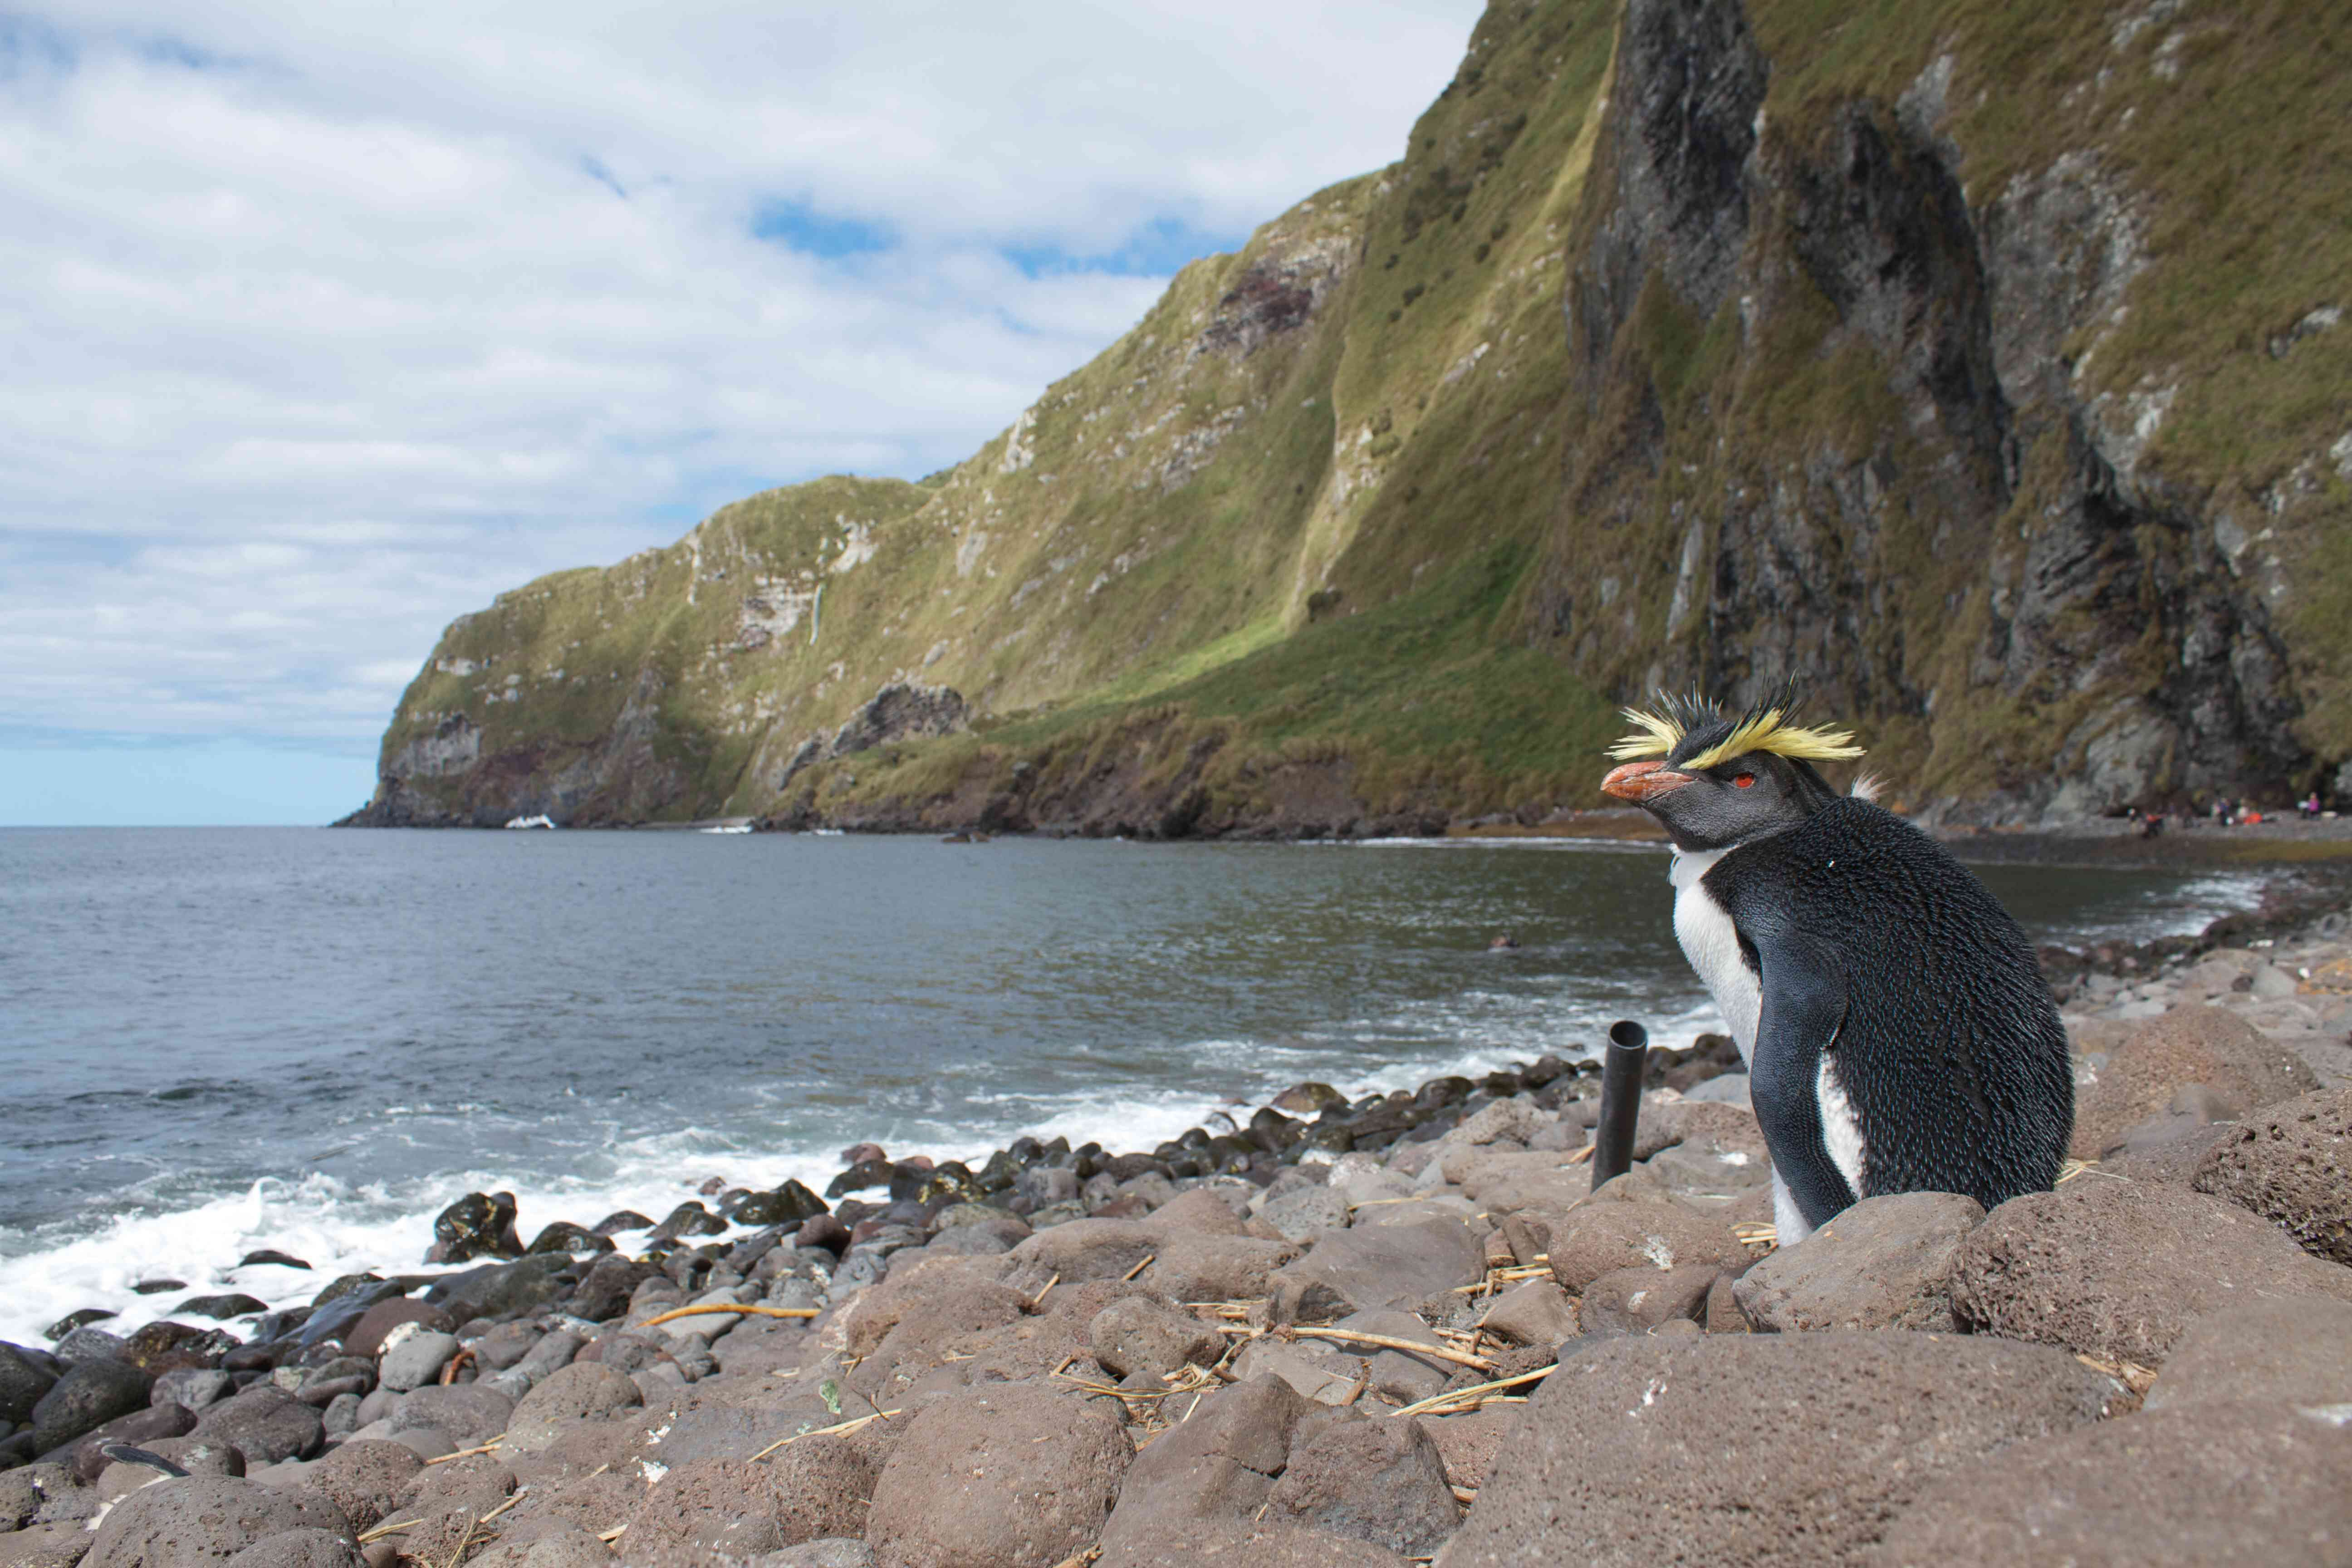 A penguin with yellow crests on its head sits on a rocky coastline